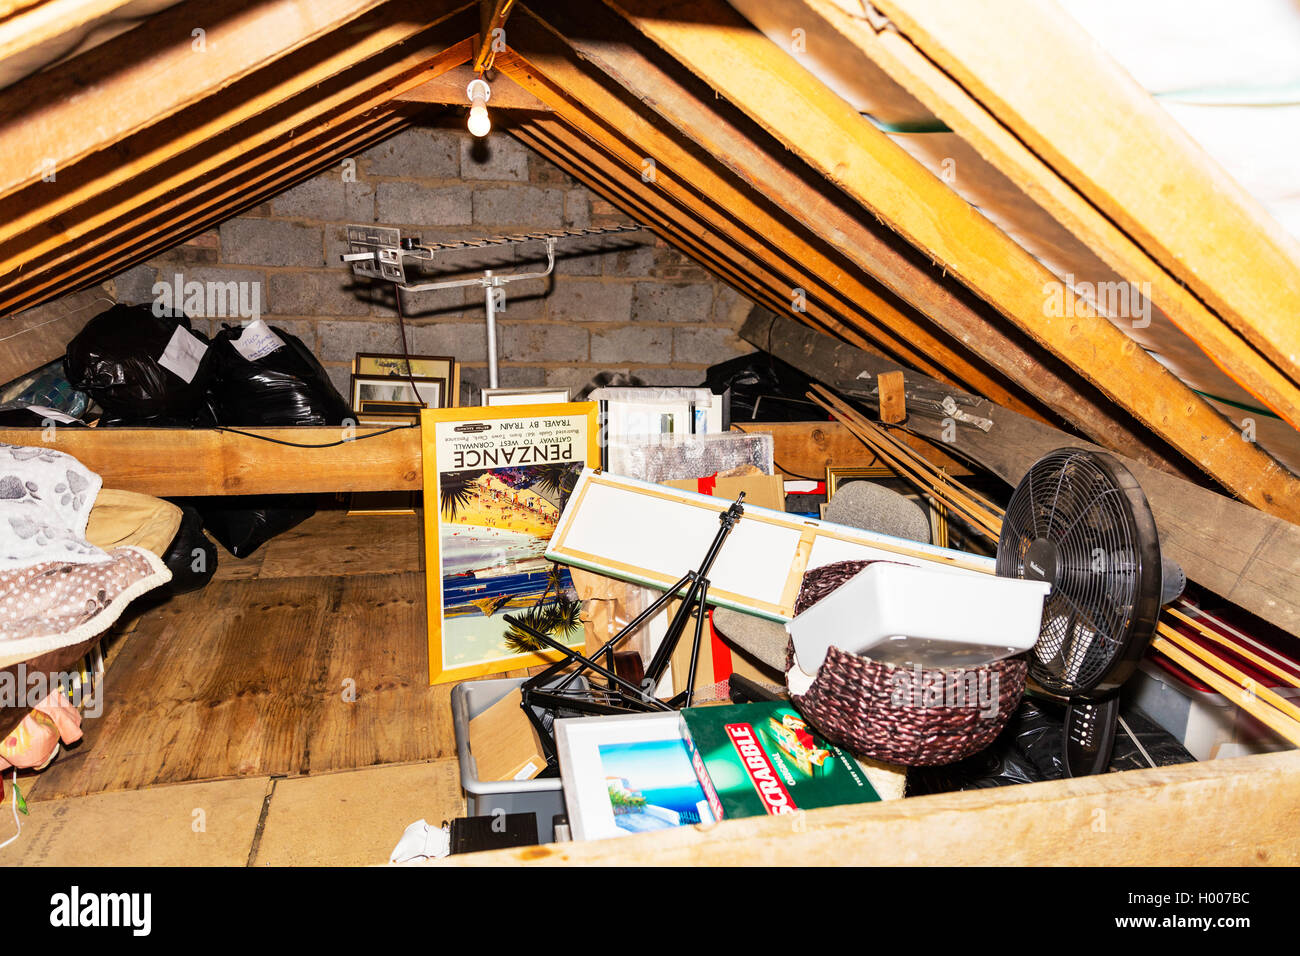 House loft space attic space used for storage full of junk stored rubbish wooden beams supporting roof UK England - Stock Image